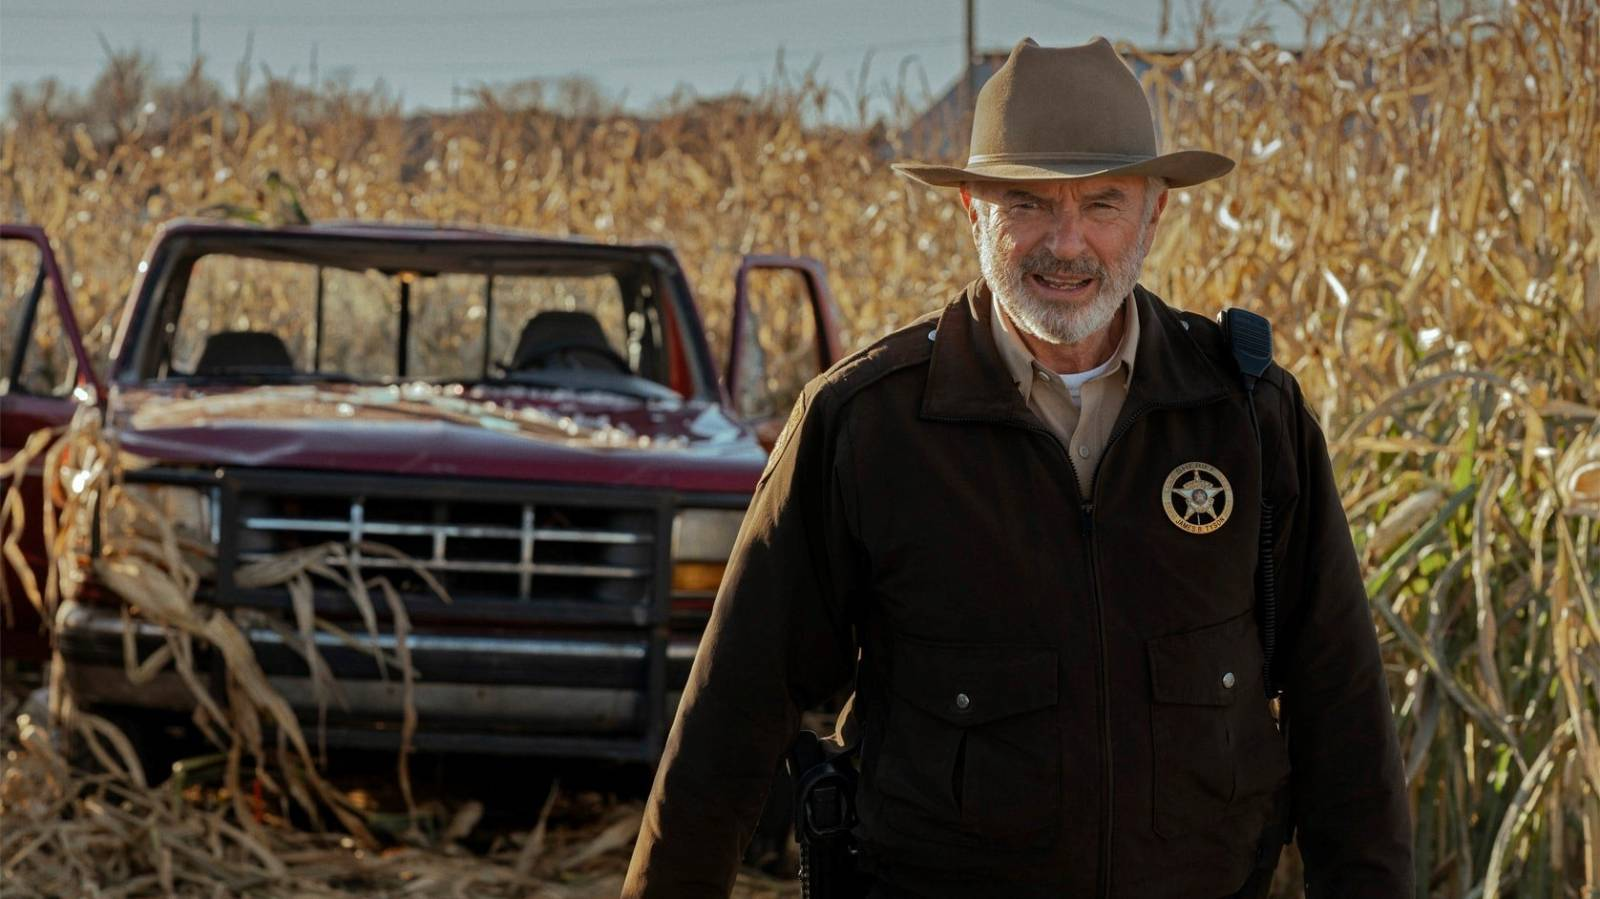 Can Sam Neill save the world in Apple's slow-burning sci-fi Invasion?